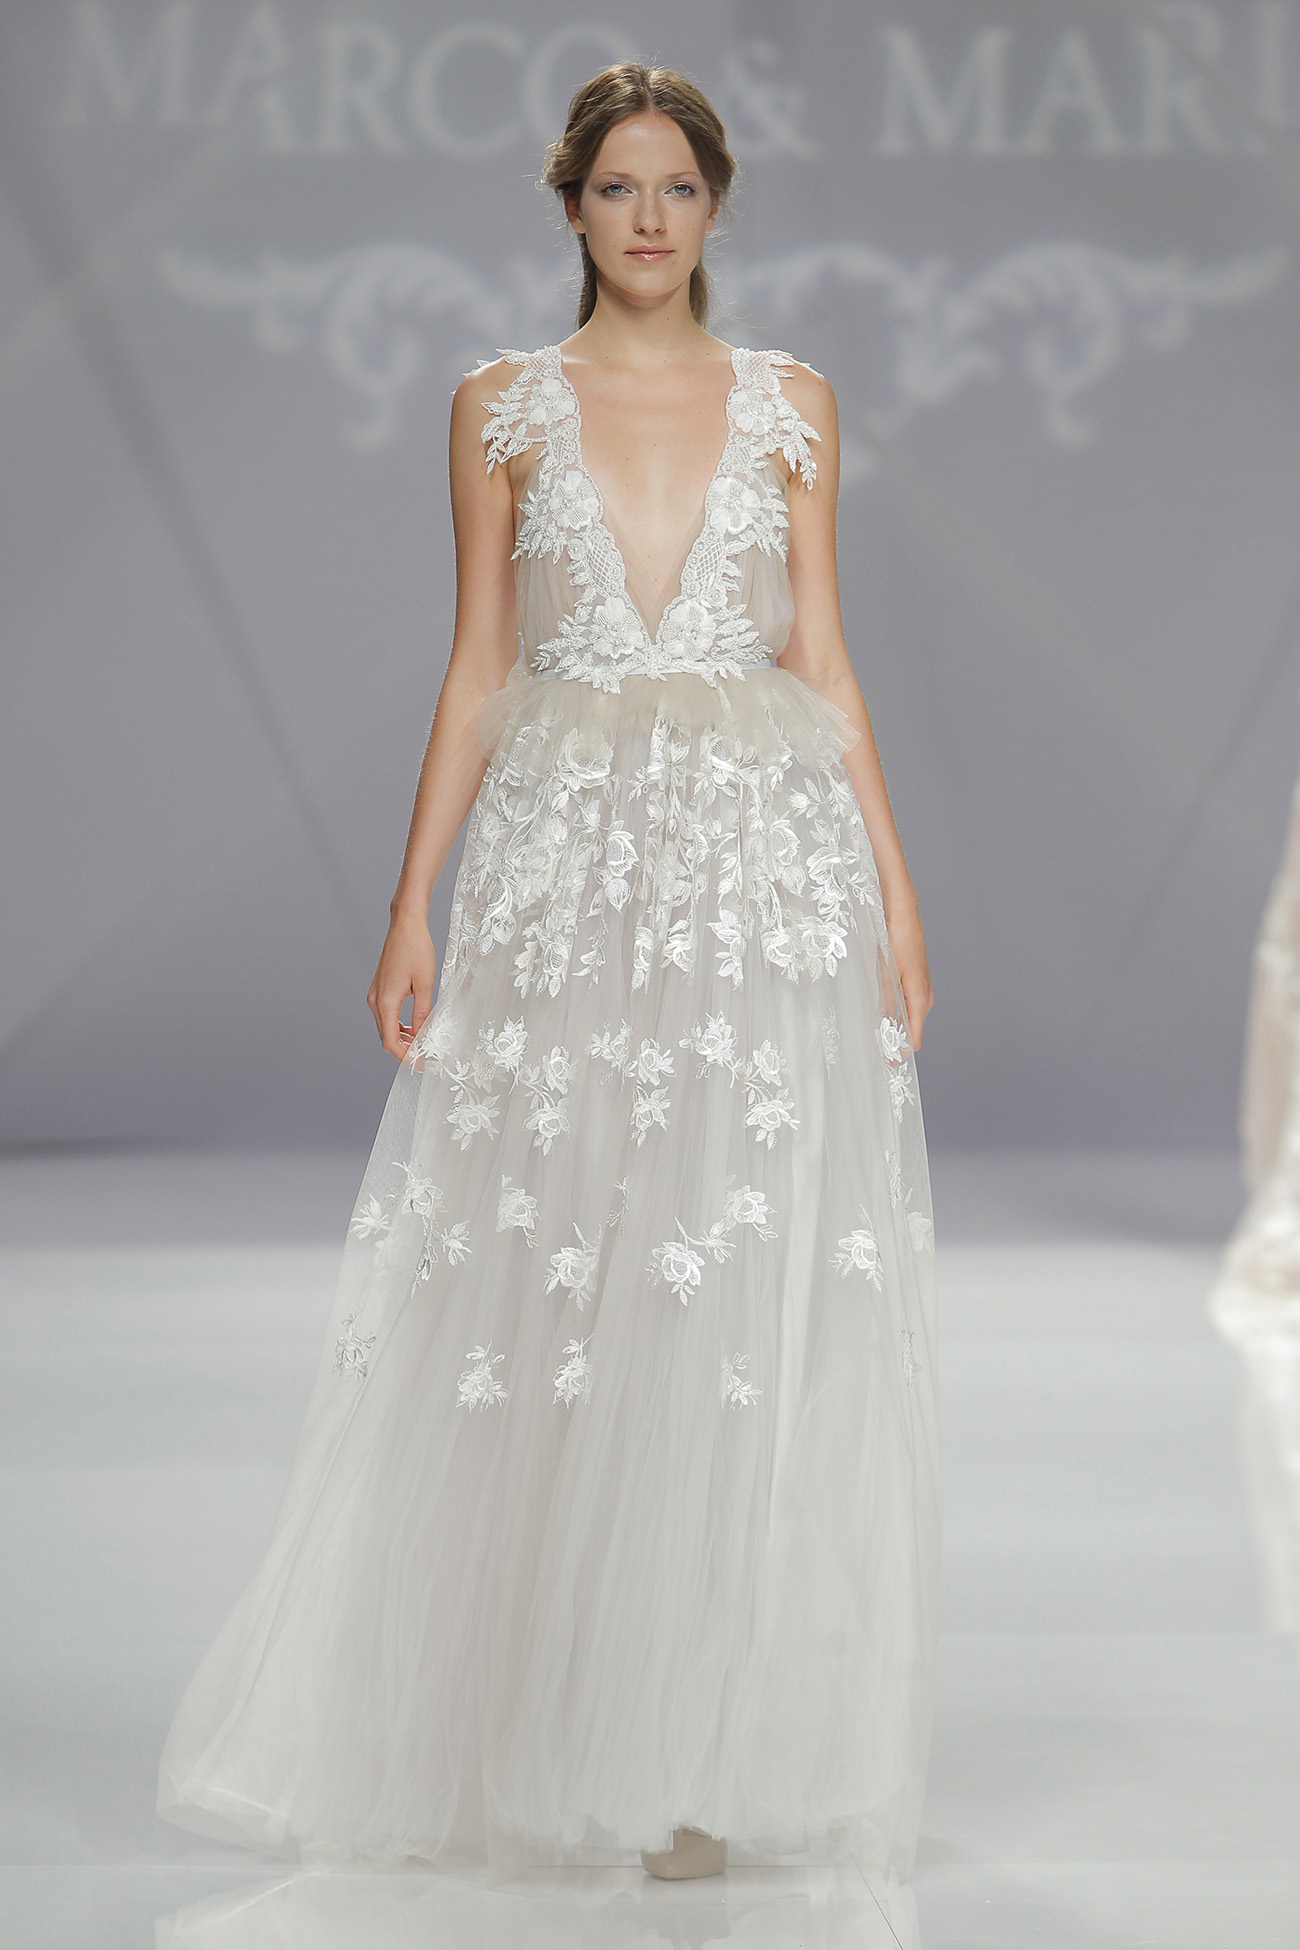 Intricate Appliques on Wedding Dresses